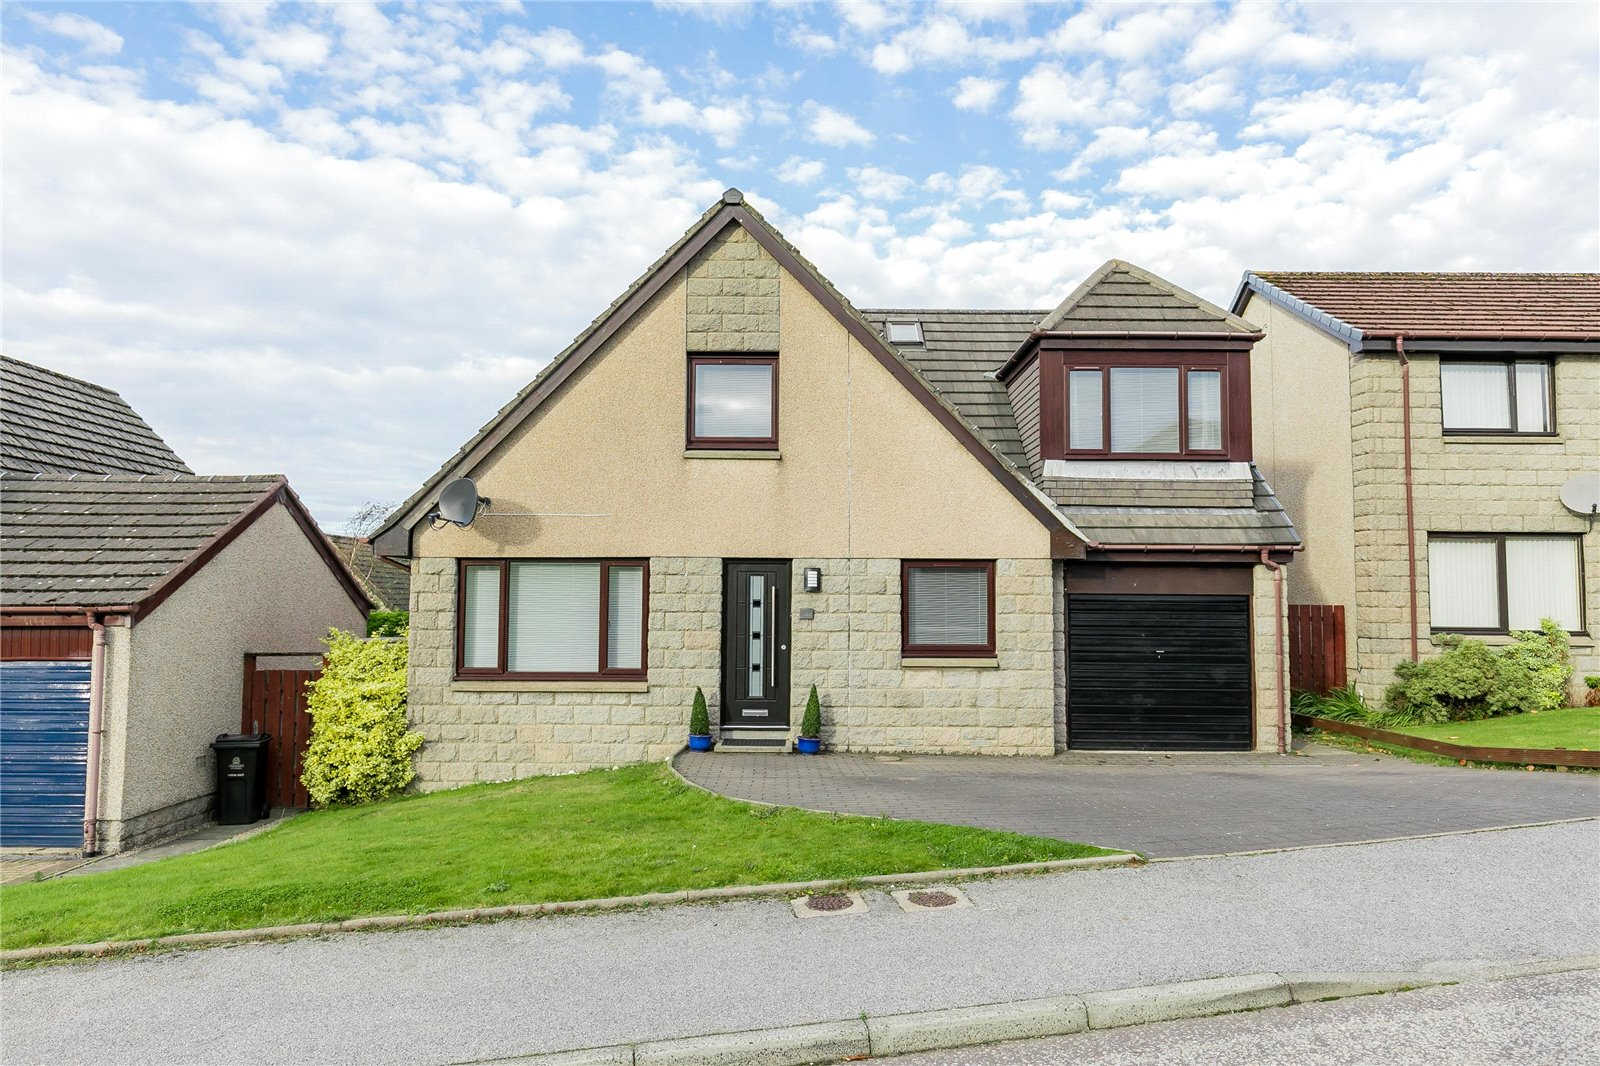 Our latest properties for sale and to let (29th October 2018)